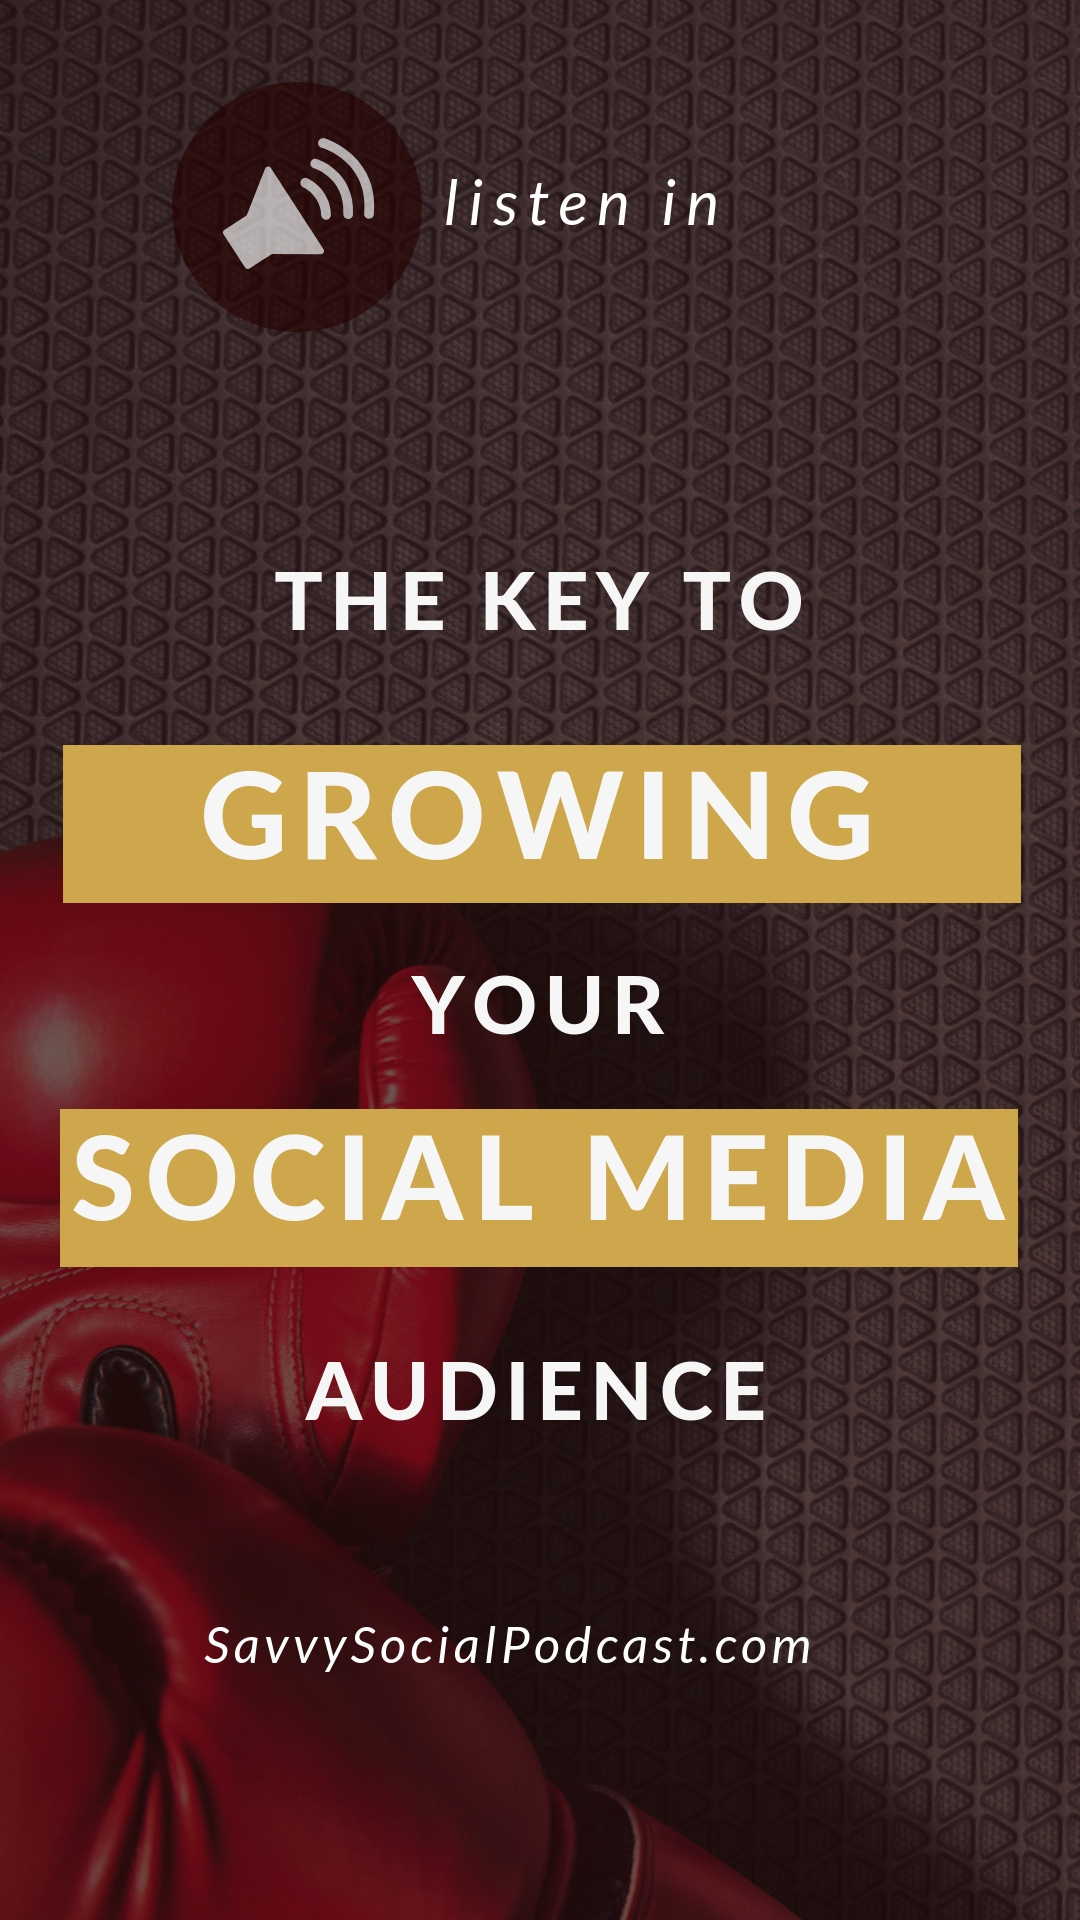 The Key to Growing Your Social Media Audience